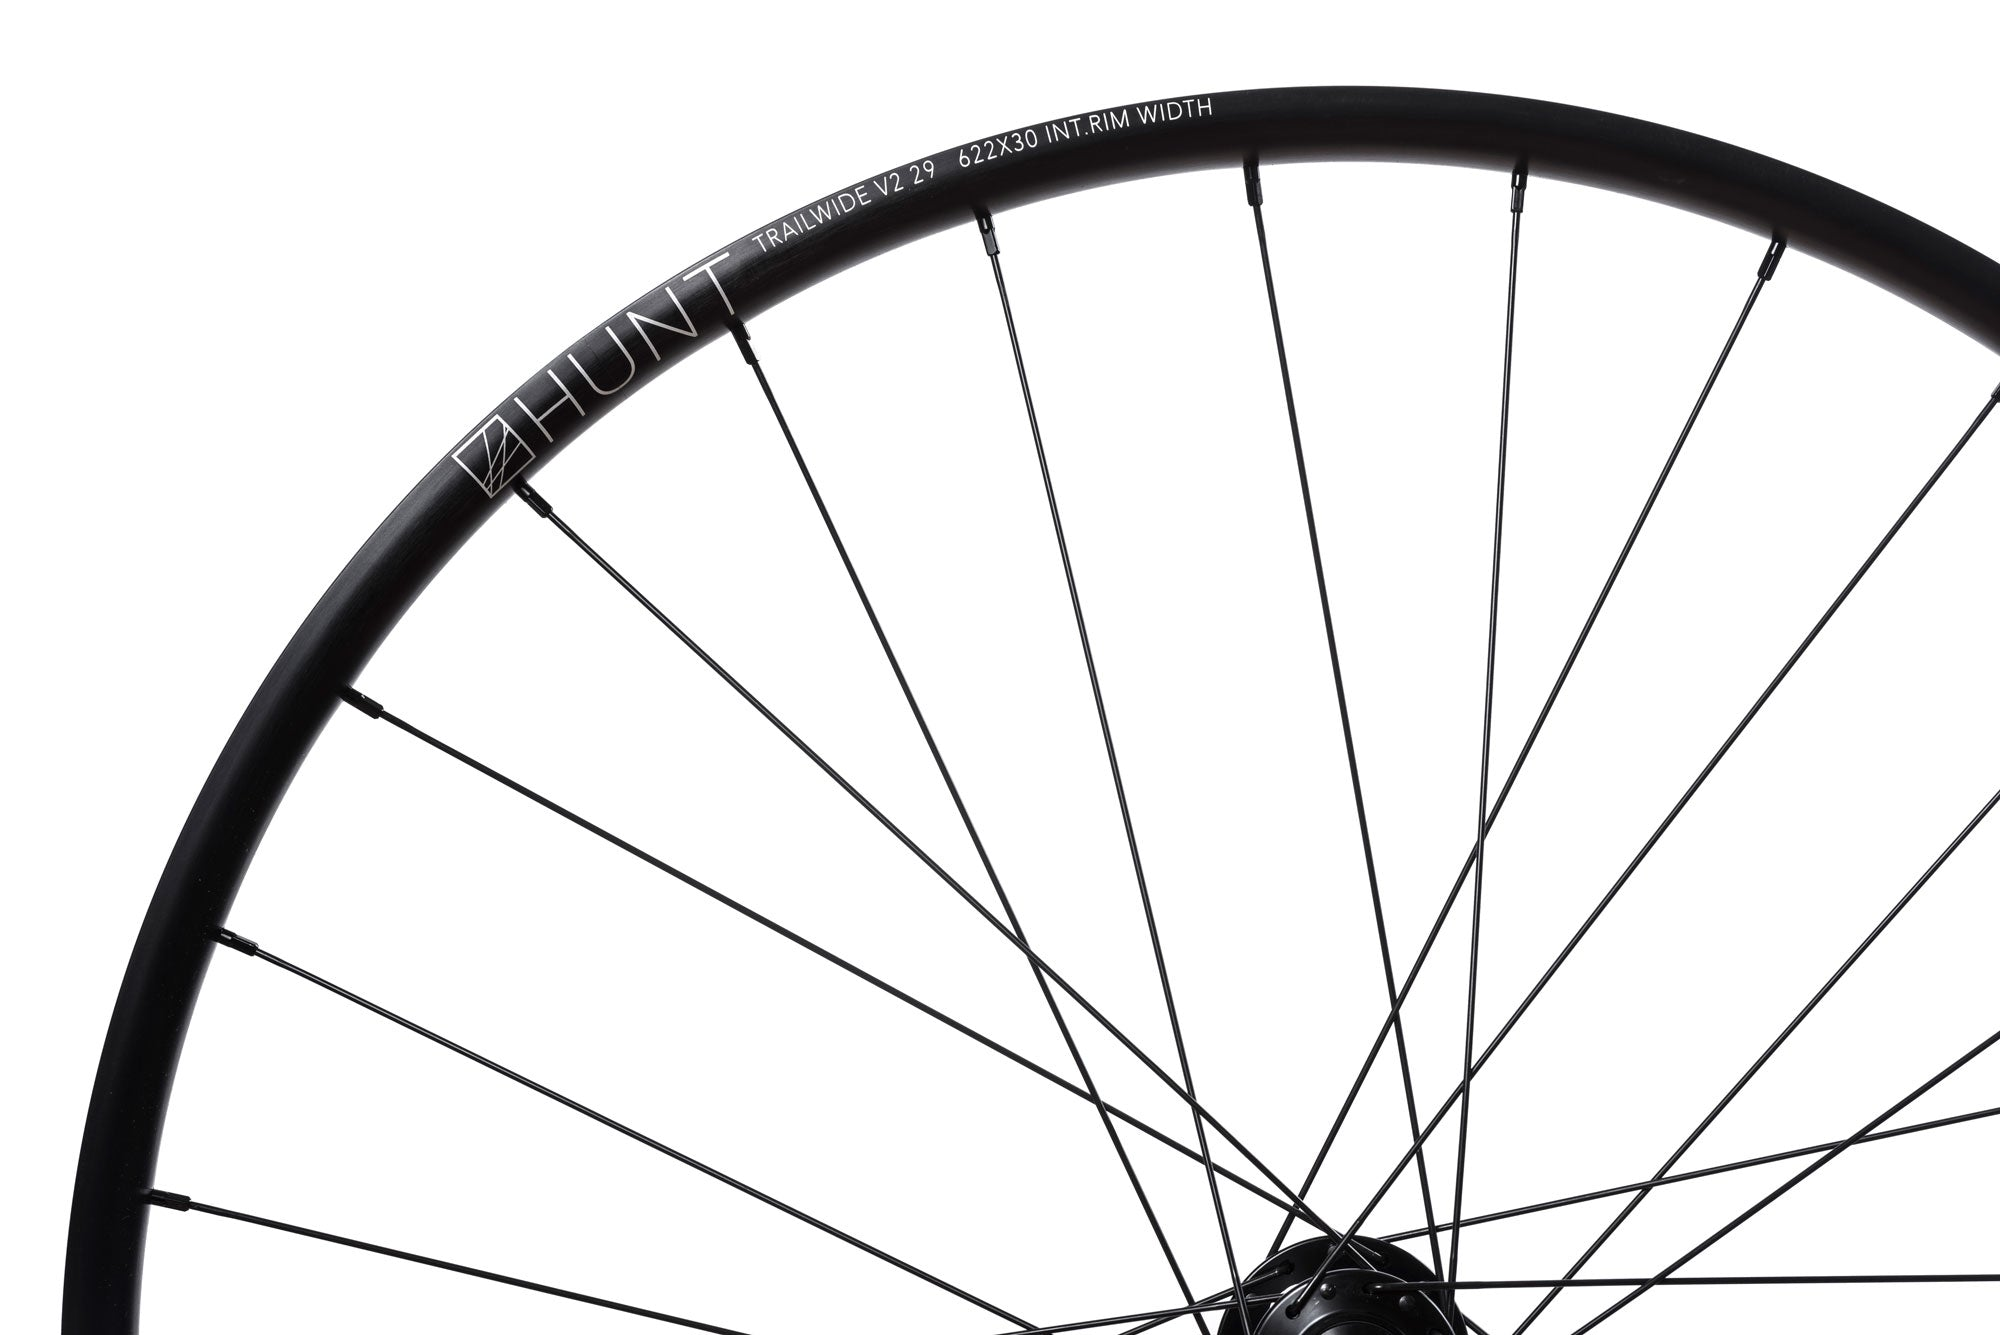 <h1>Spokes</h1><i>We have chosen top of the line, triple butted Pillar Spokes with increased reinforcement at the spoke head. Not only are these spokes extremely lightweight, they are also able to provide a greater degree of elasticity when put under increased stress. The Pillar Spoke Reinforcement (PSR) puts more material at the spoke head, just before the J-Bend to prevent failure in this stress area.</i>